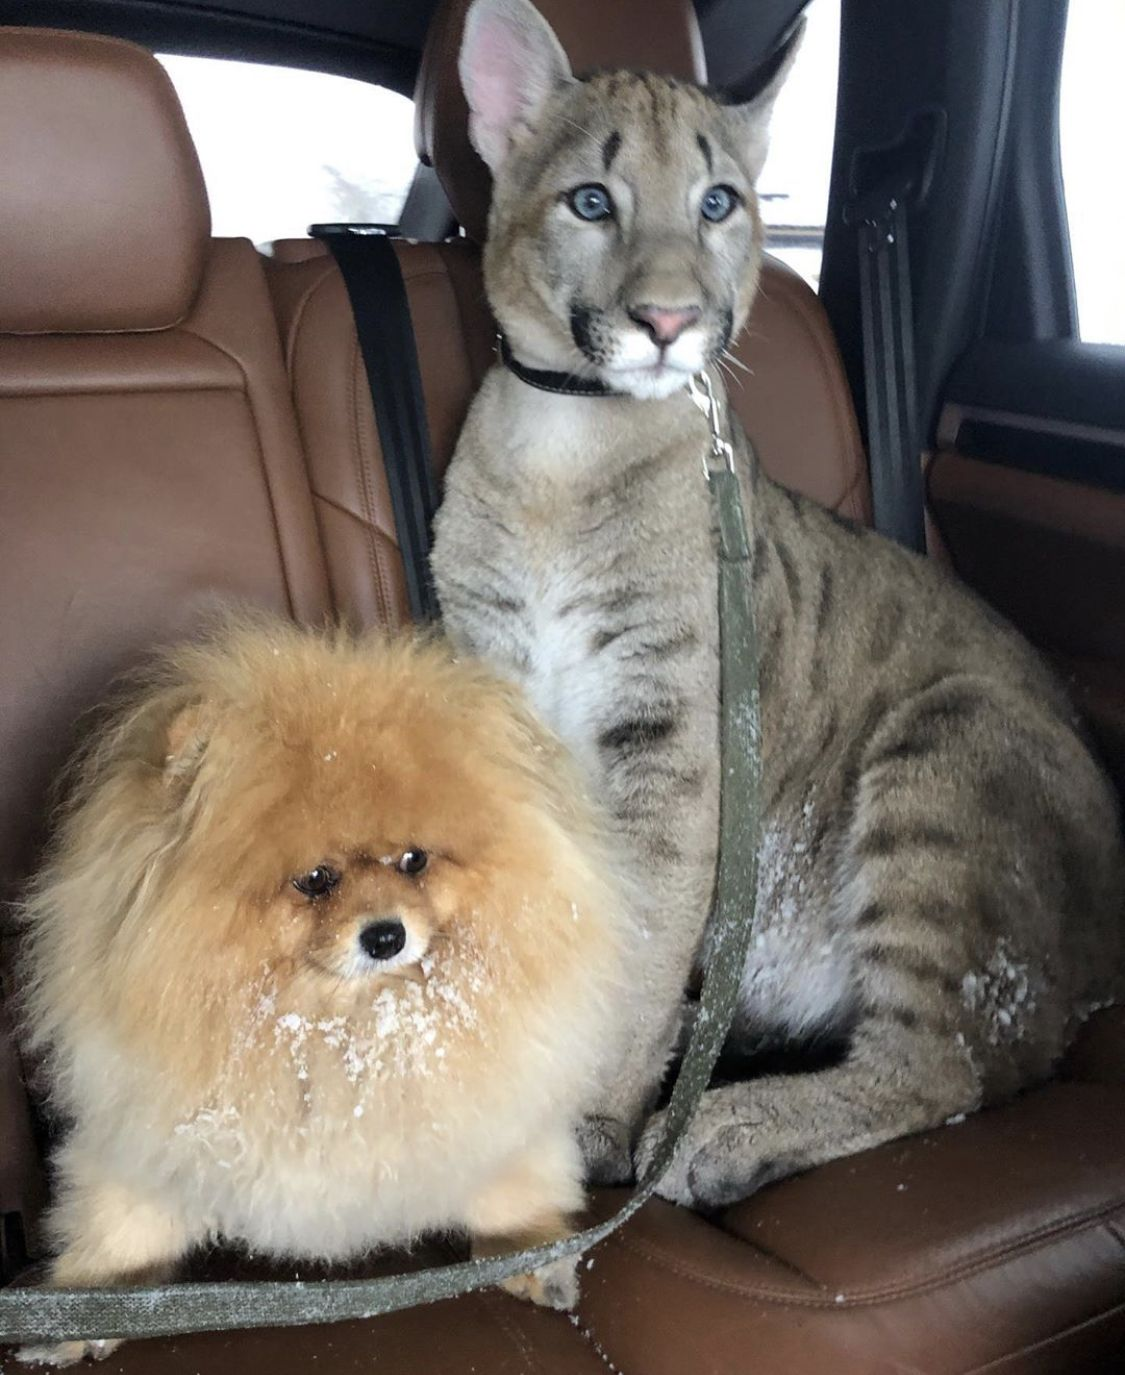 Pin By Sally Jean On Here Kitty Kitty In 2020 Savannah Cat Savannah Kitten Savannah Cat Breeders